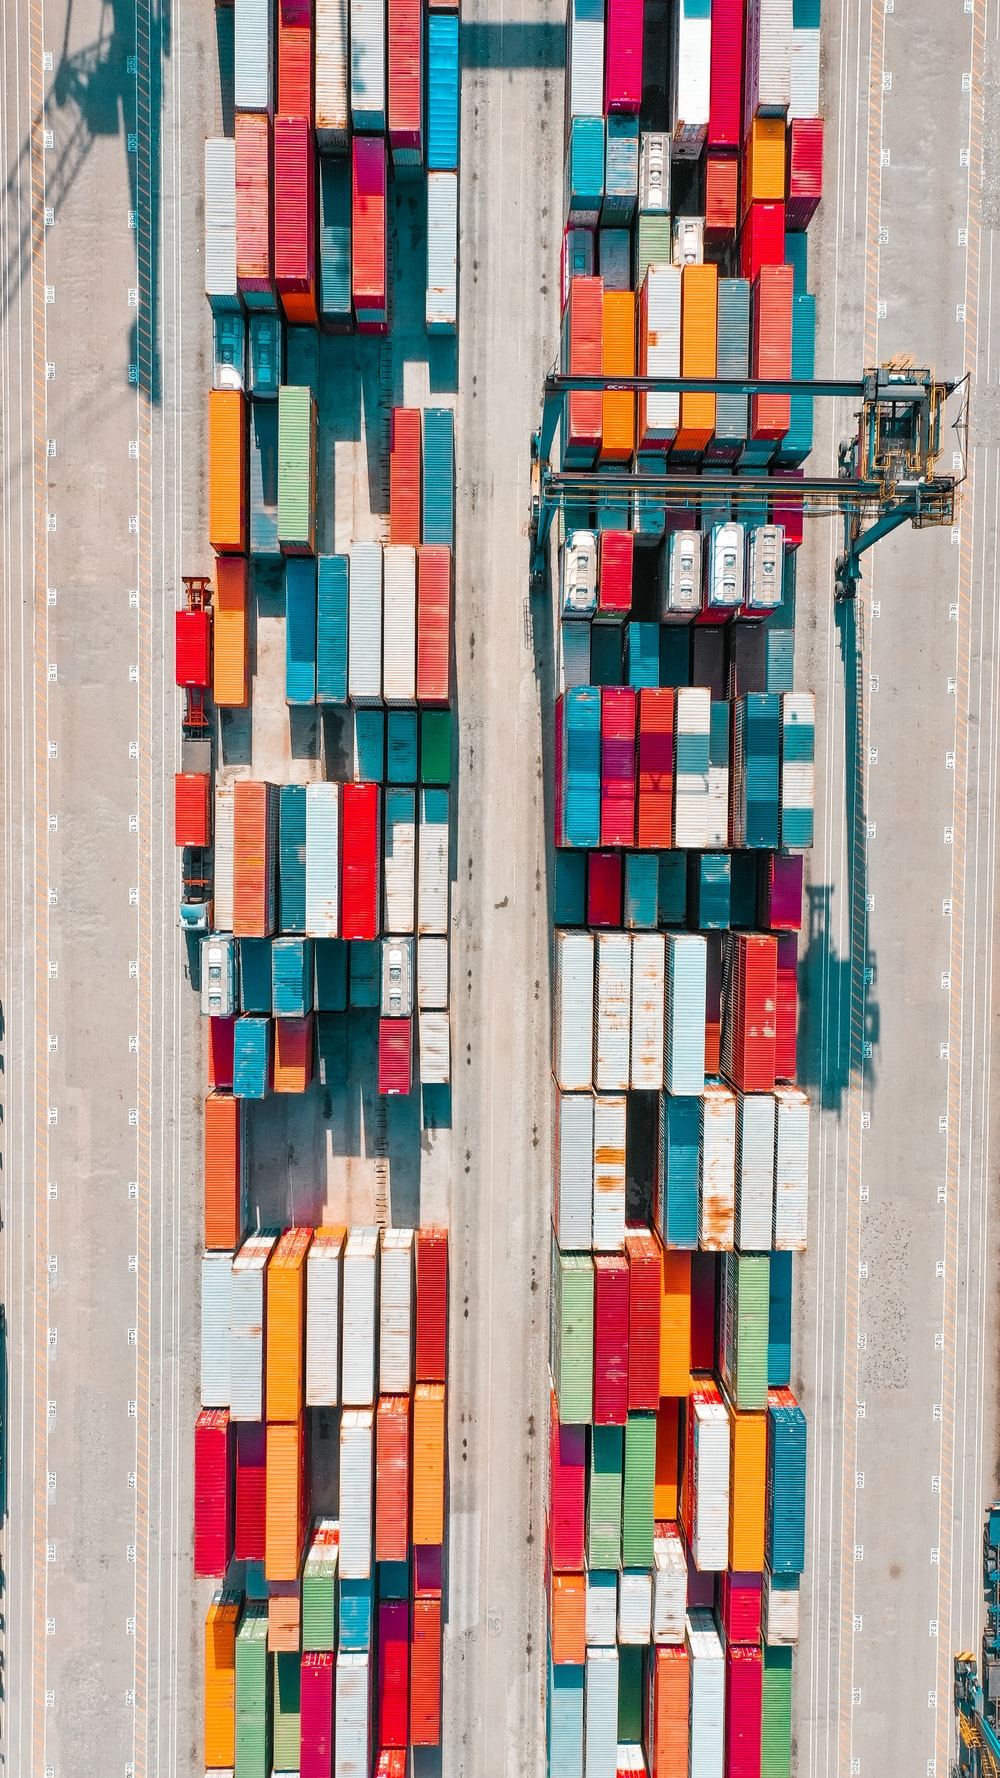 bird's-eye view of assorted-colored freight containers